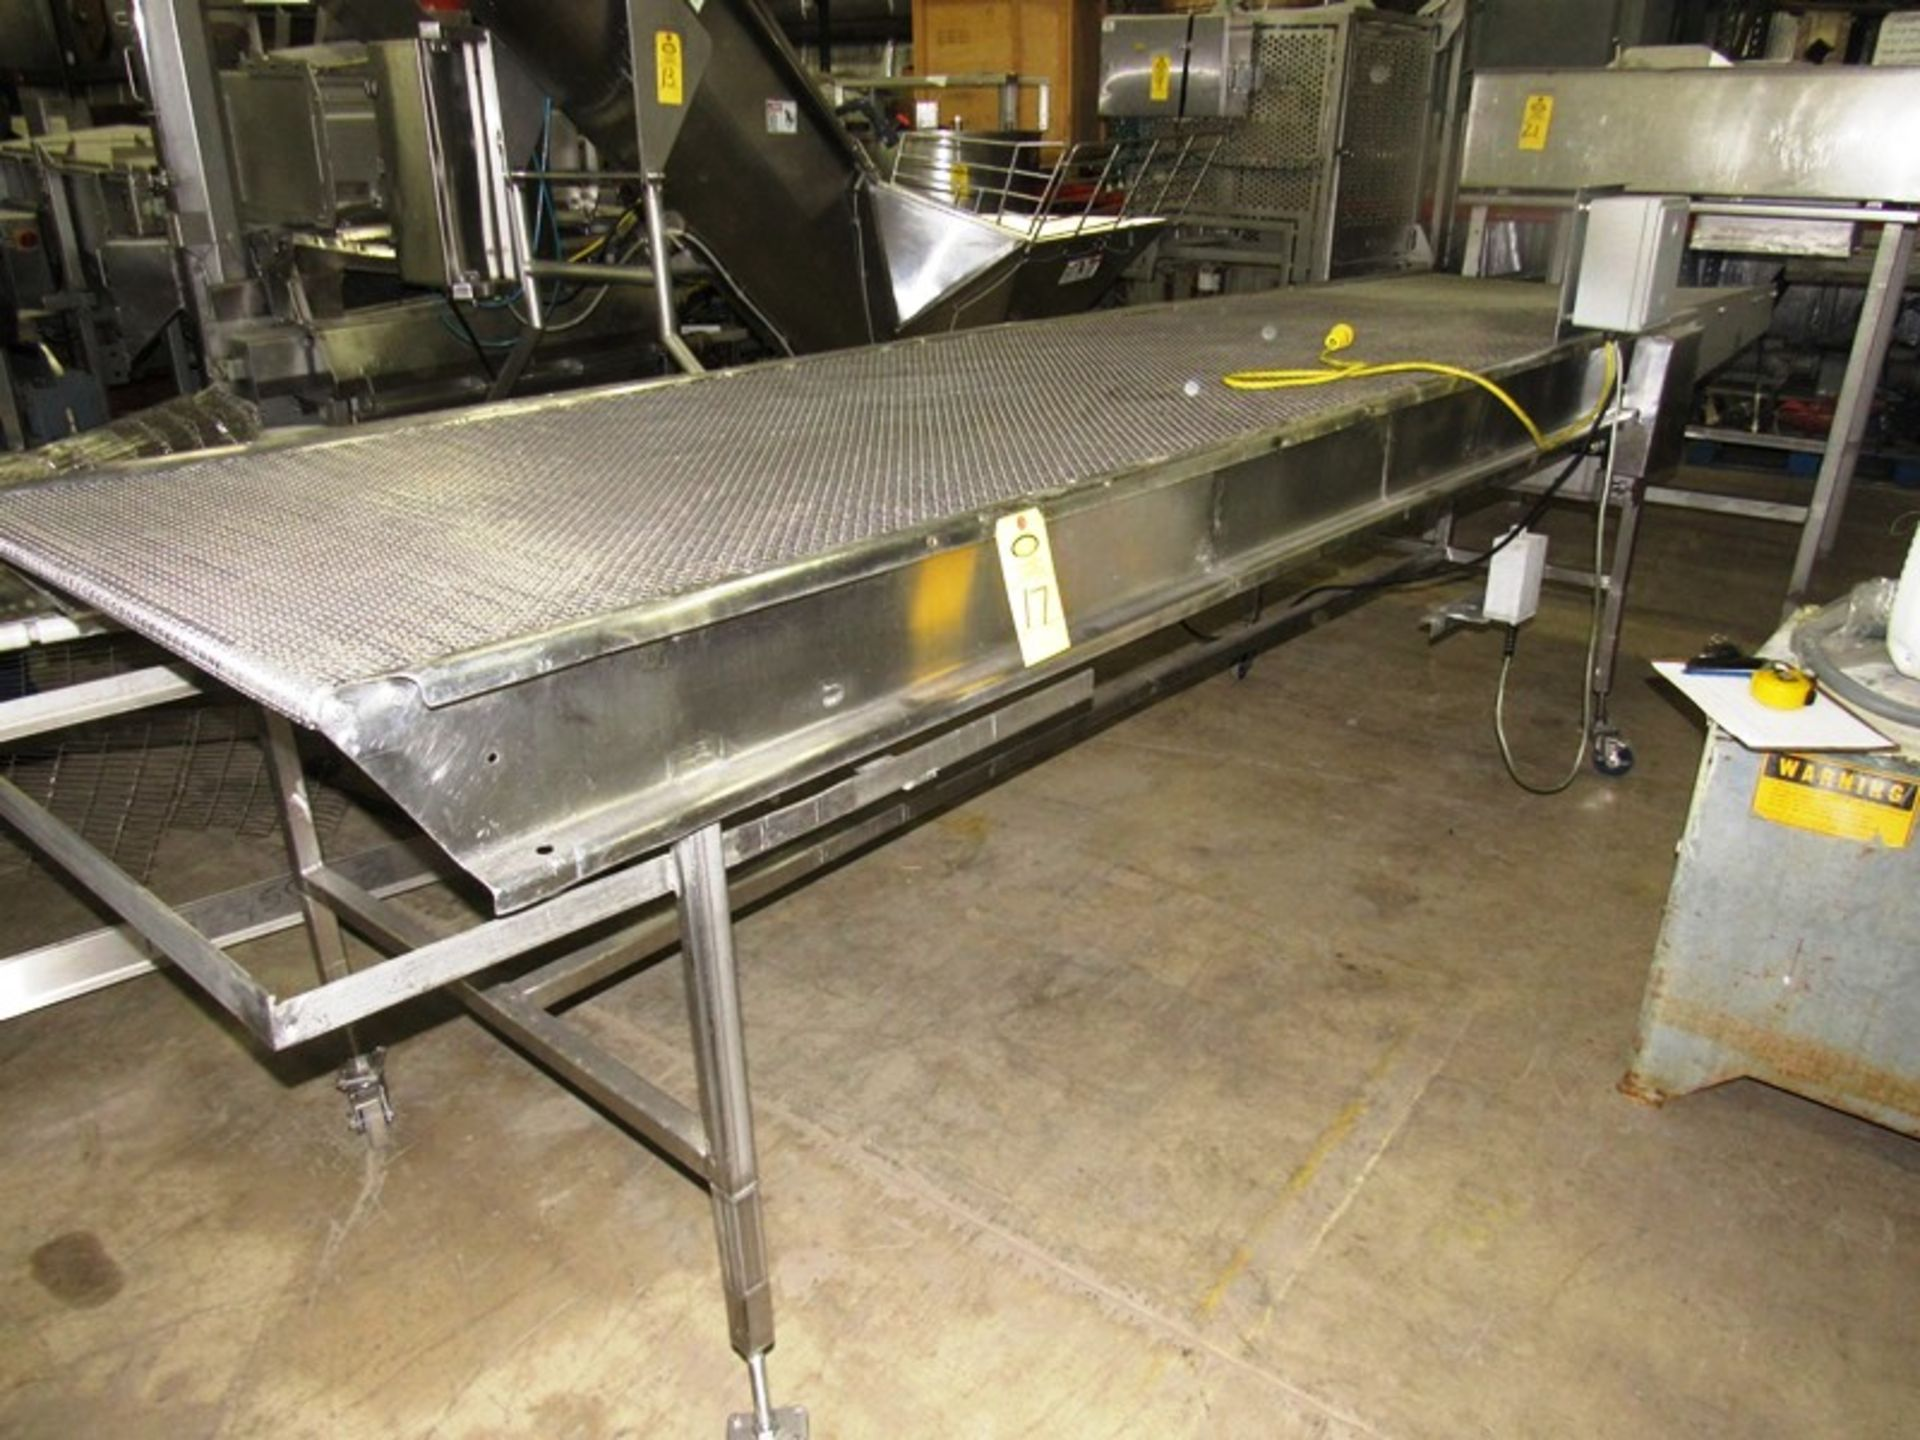 """Lot 17 - Stainless Steel Conveyor, 40"""" W X 14' L stainless steel mesh belt on wheels, 115 volts"""